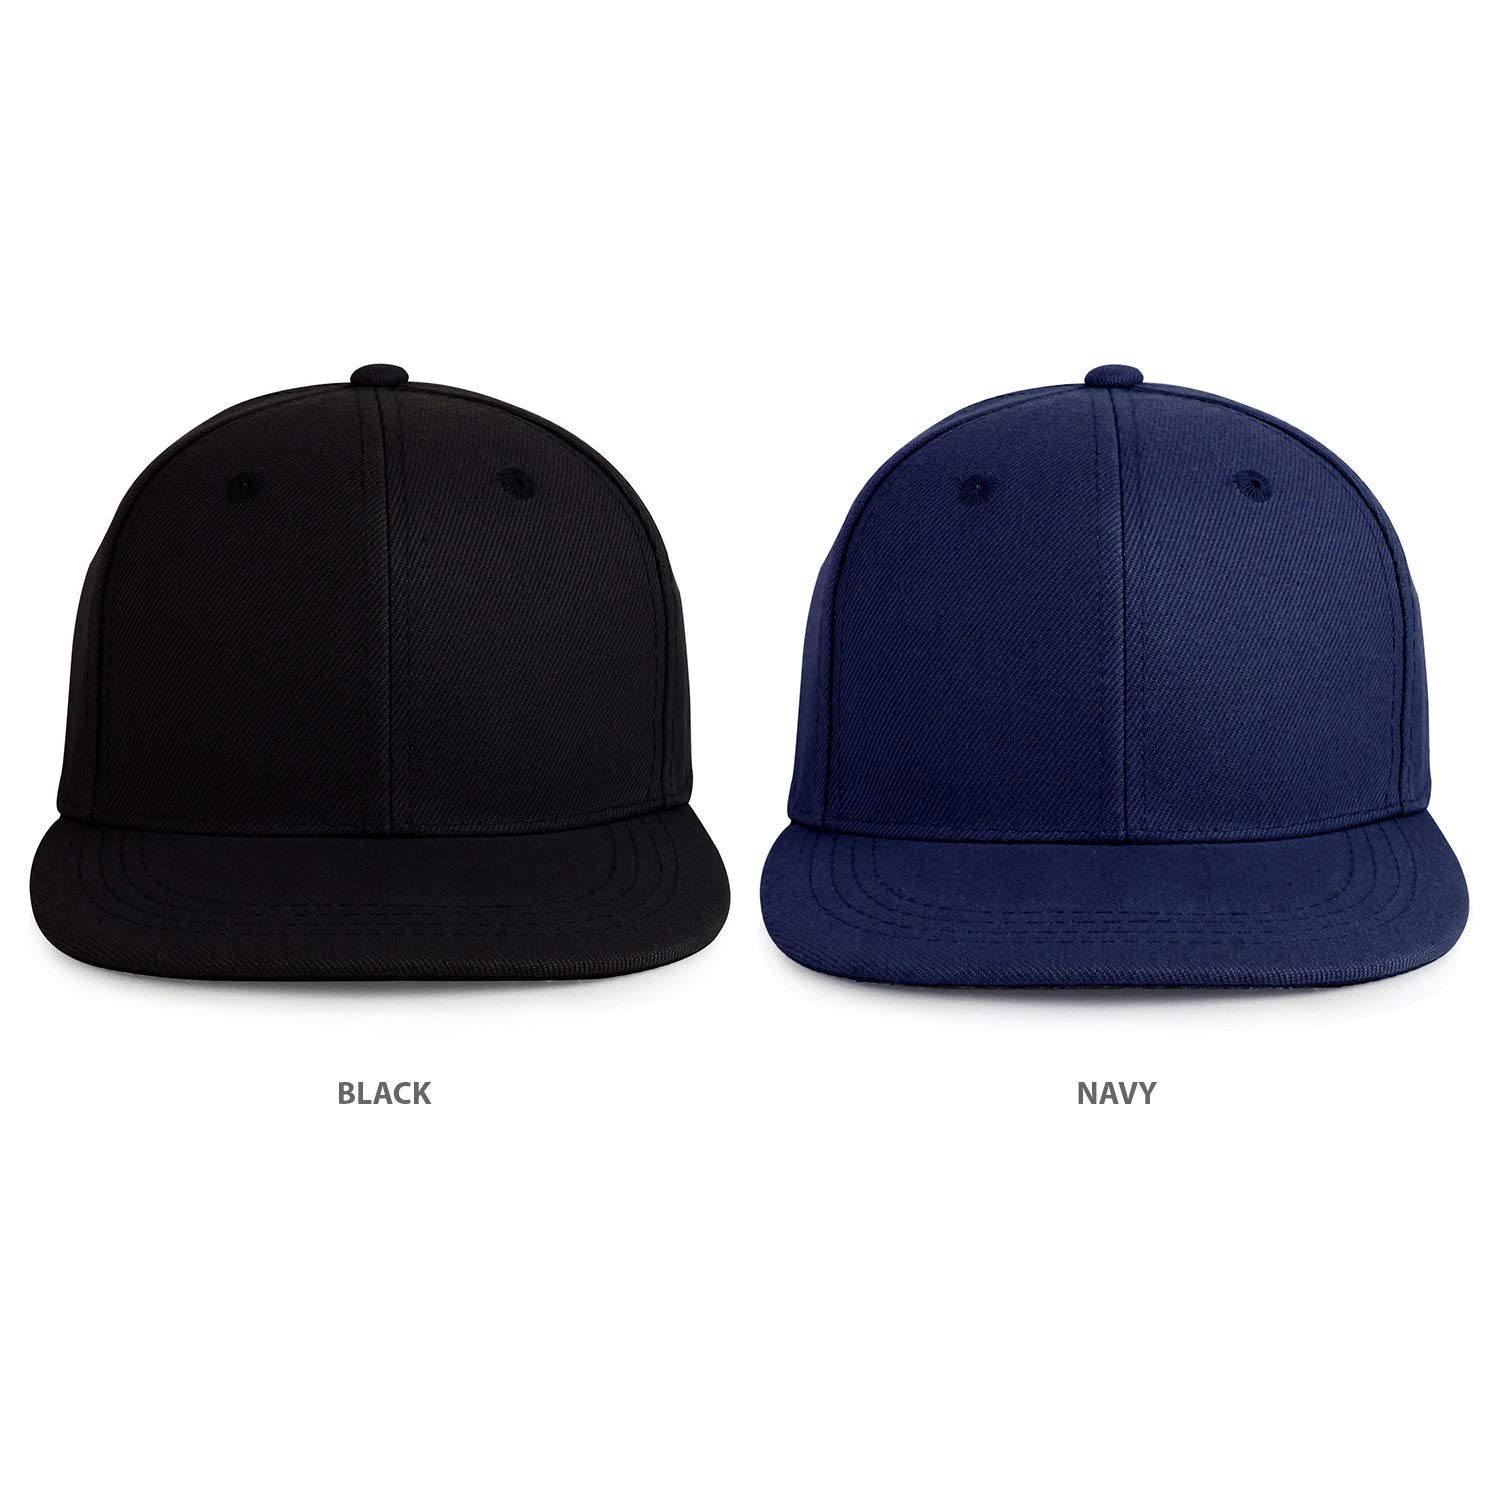 4204b8a99883e Get Quotations · Trendy Apparel Shop Infant to Toddler Kid s Plain  Structured Flatbill Snapback Cap